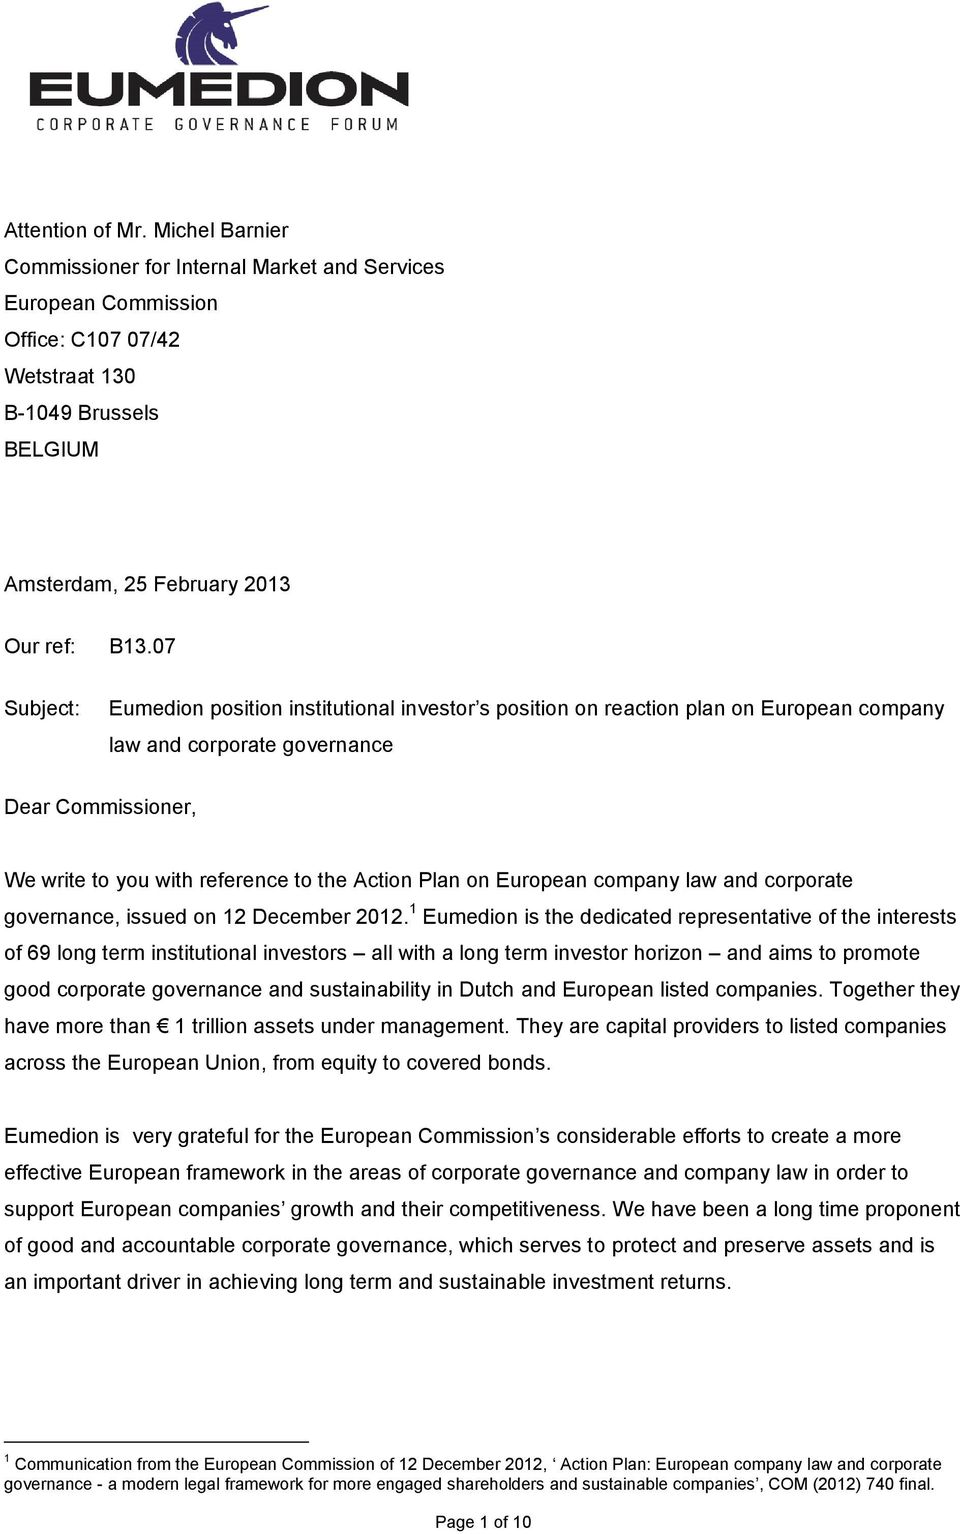 on European company law and corporate governance, issued on 12 December 2012.